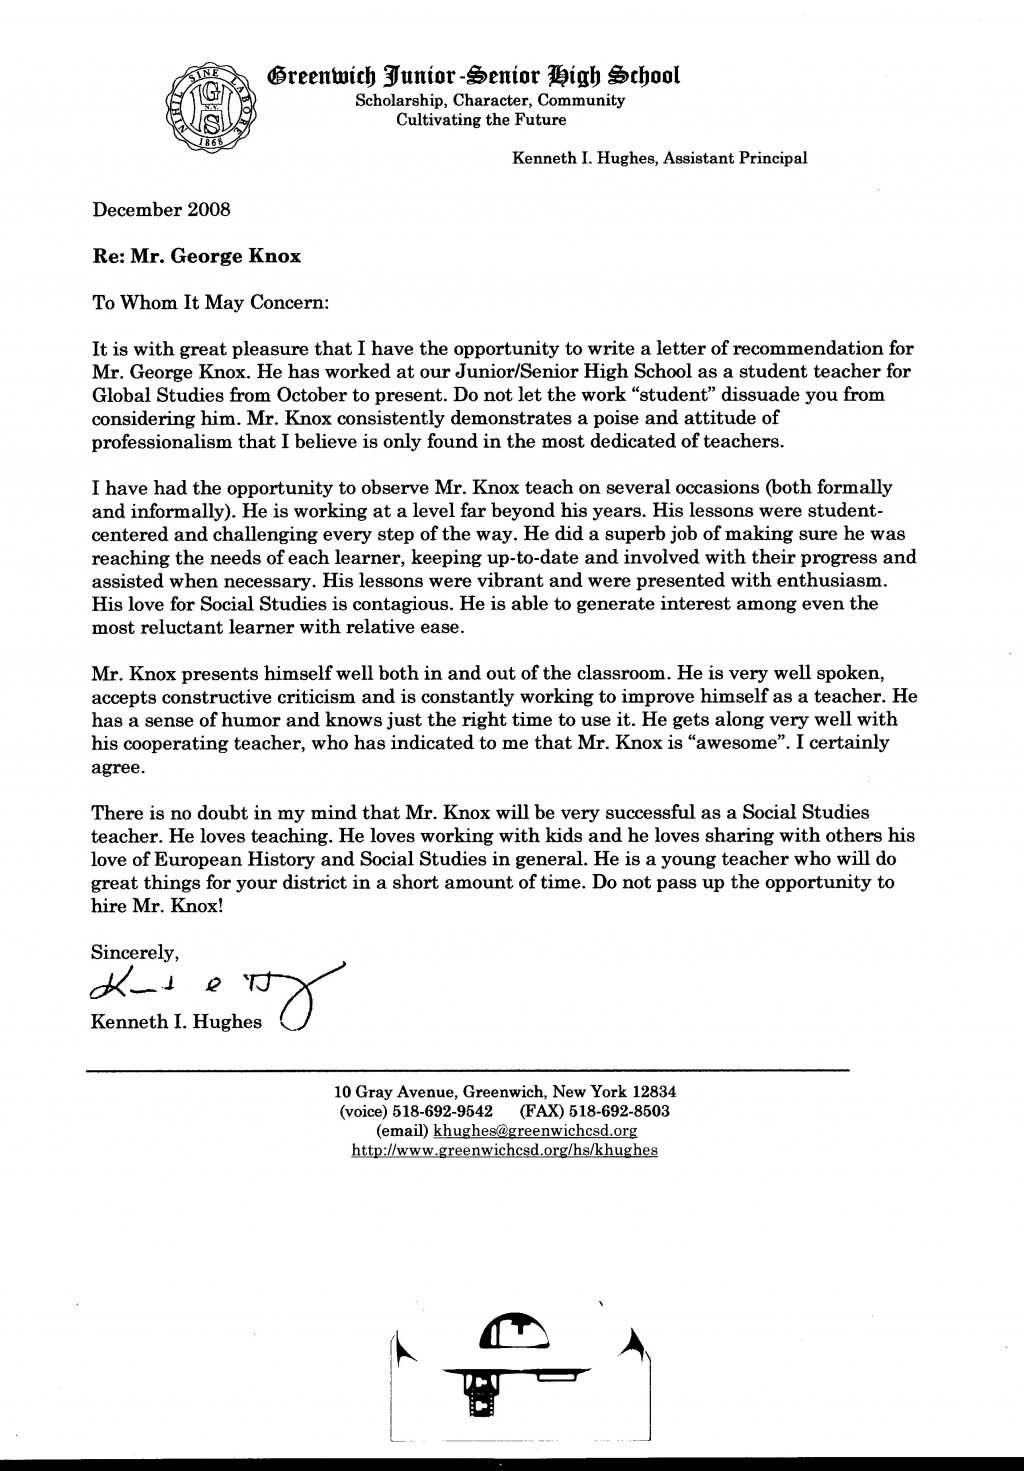 022 Proper Letter Format High School New College Scholarship Essay Scholarships You Don T Have To Write An For Example Amazing Short Easy Large